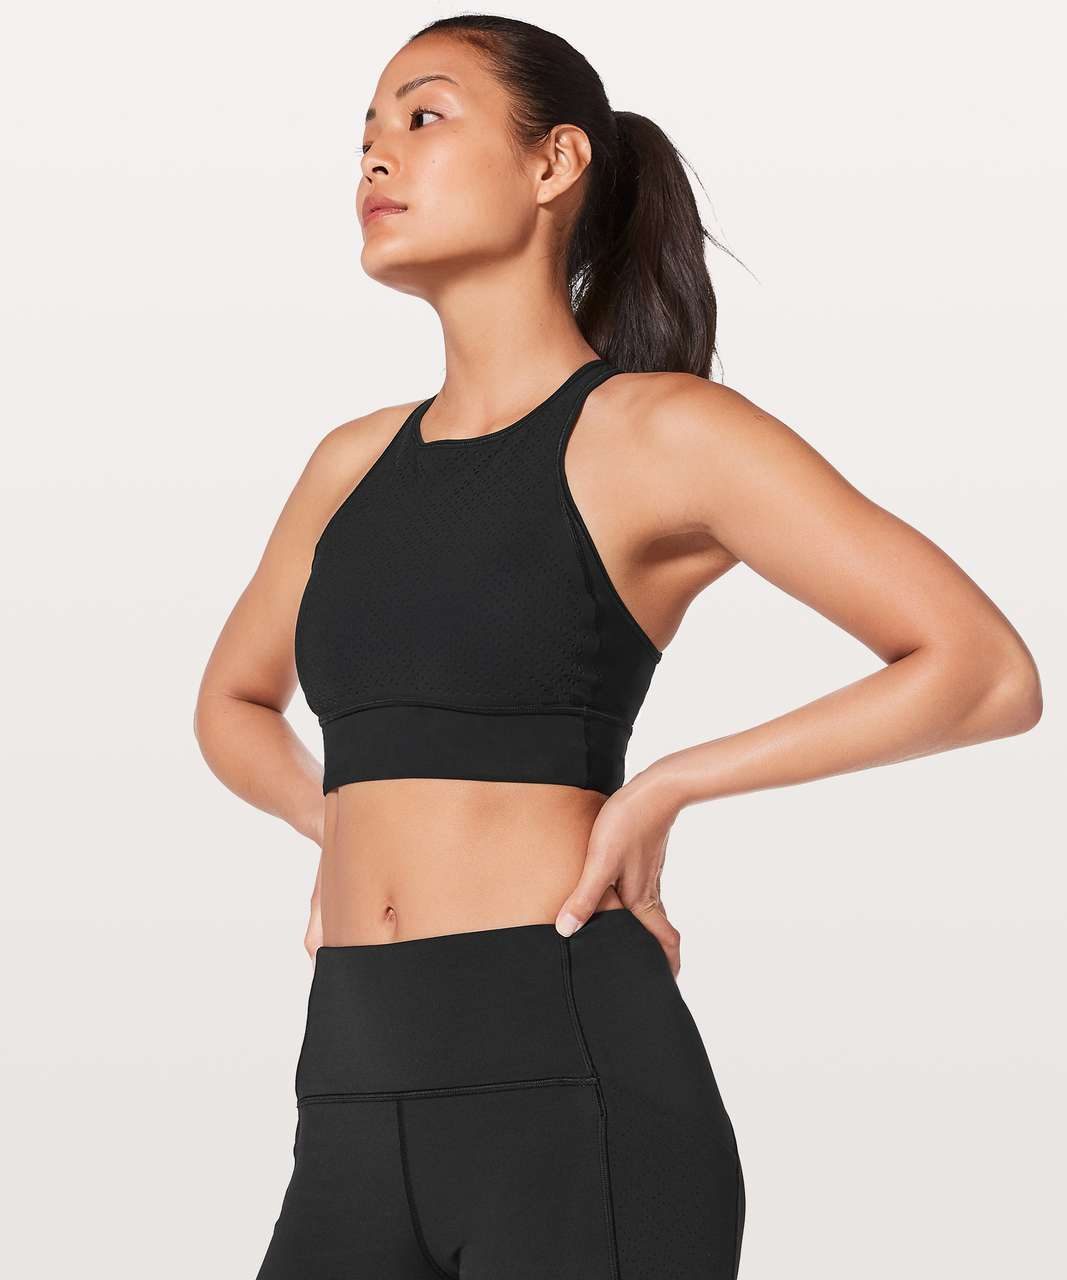 Lululemon Get Your Peek On Bra - Black